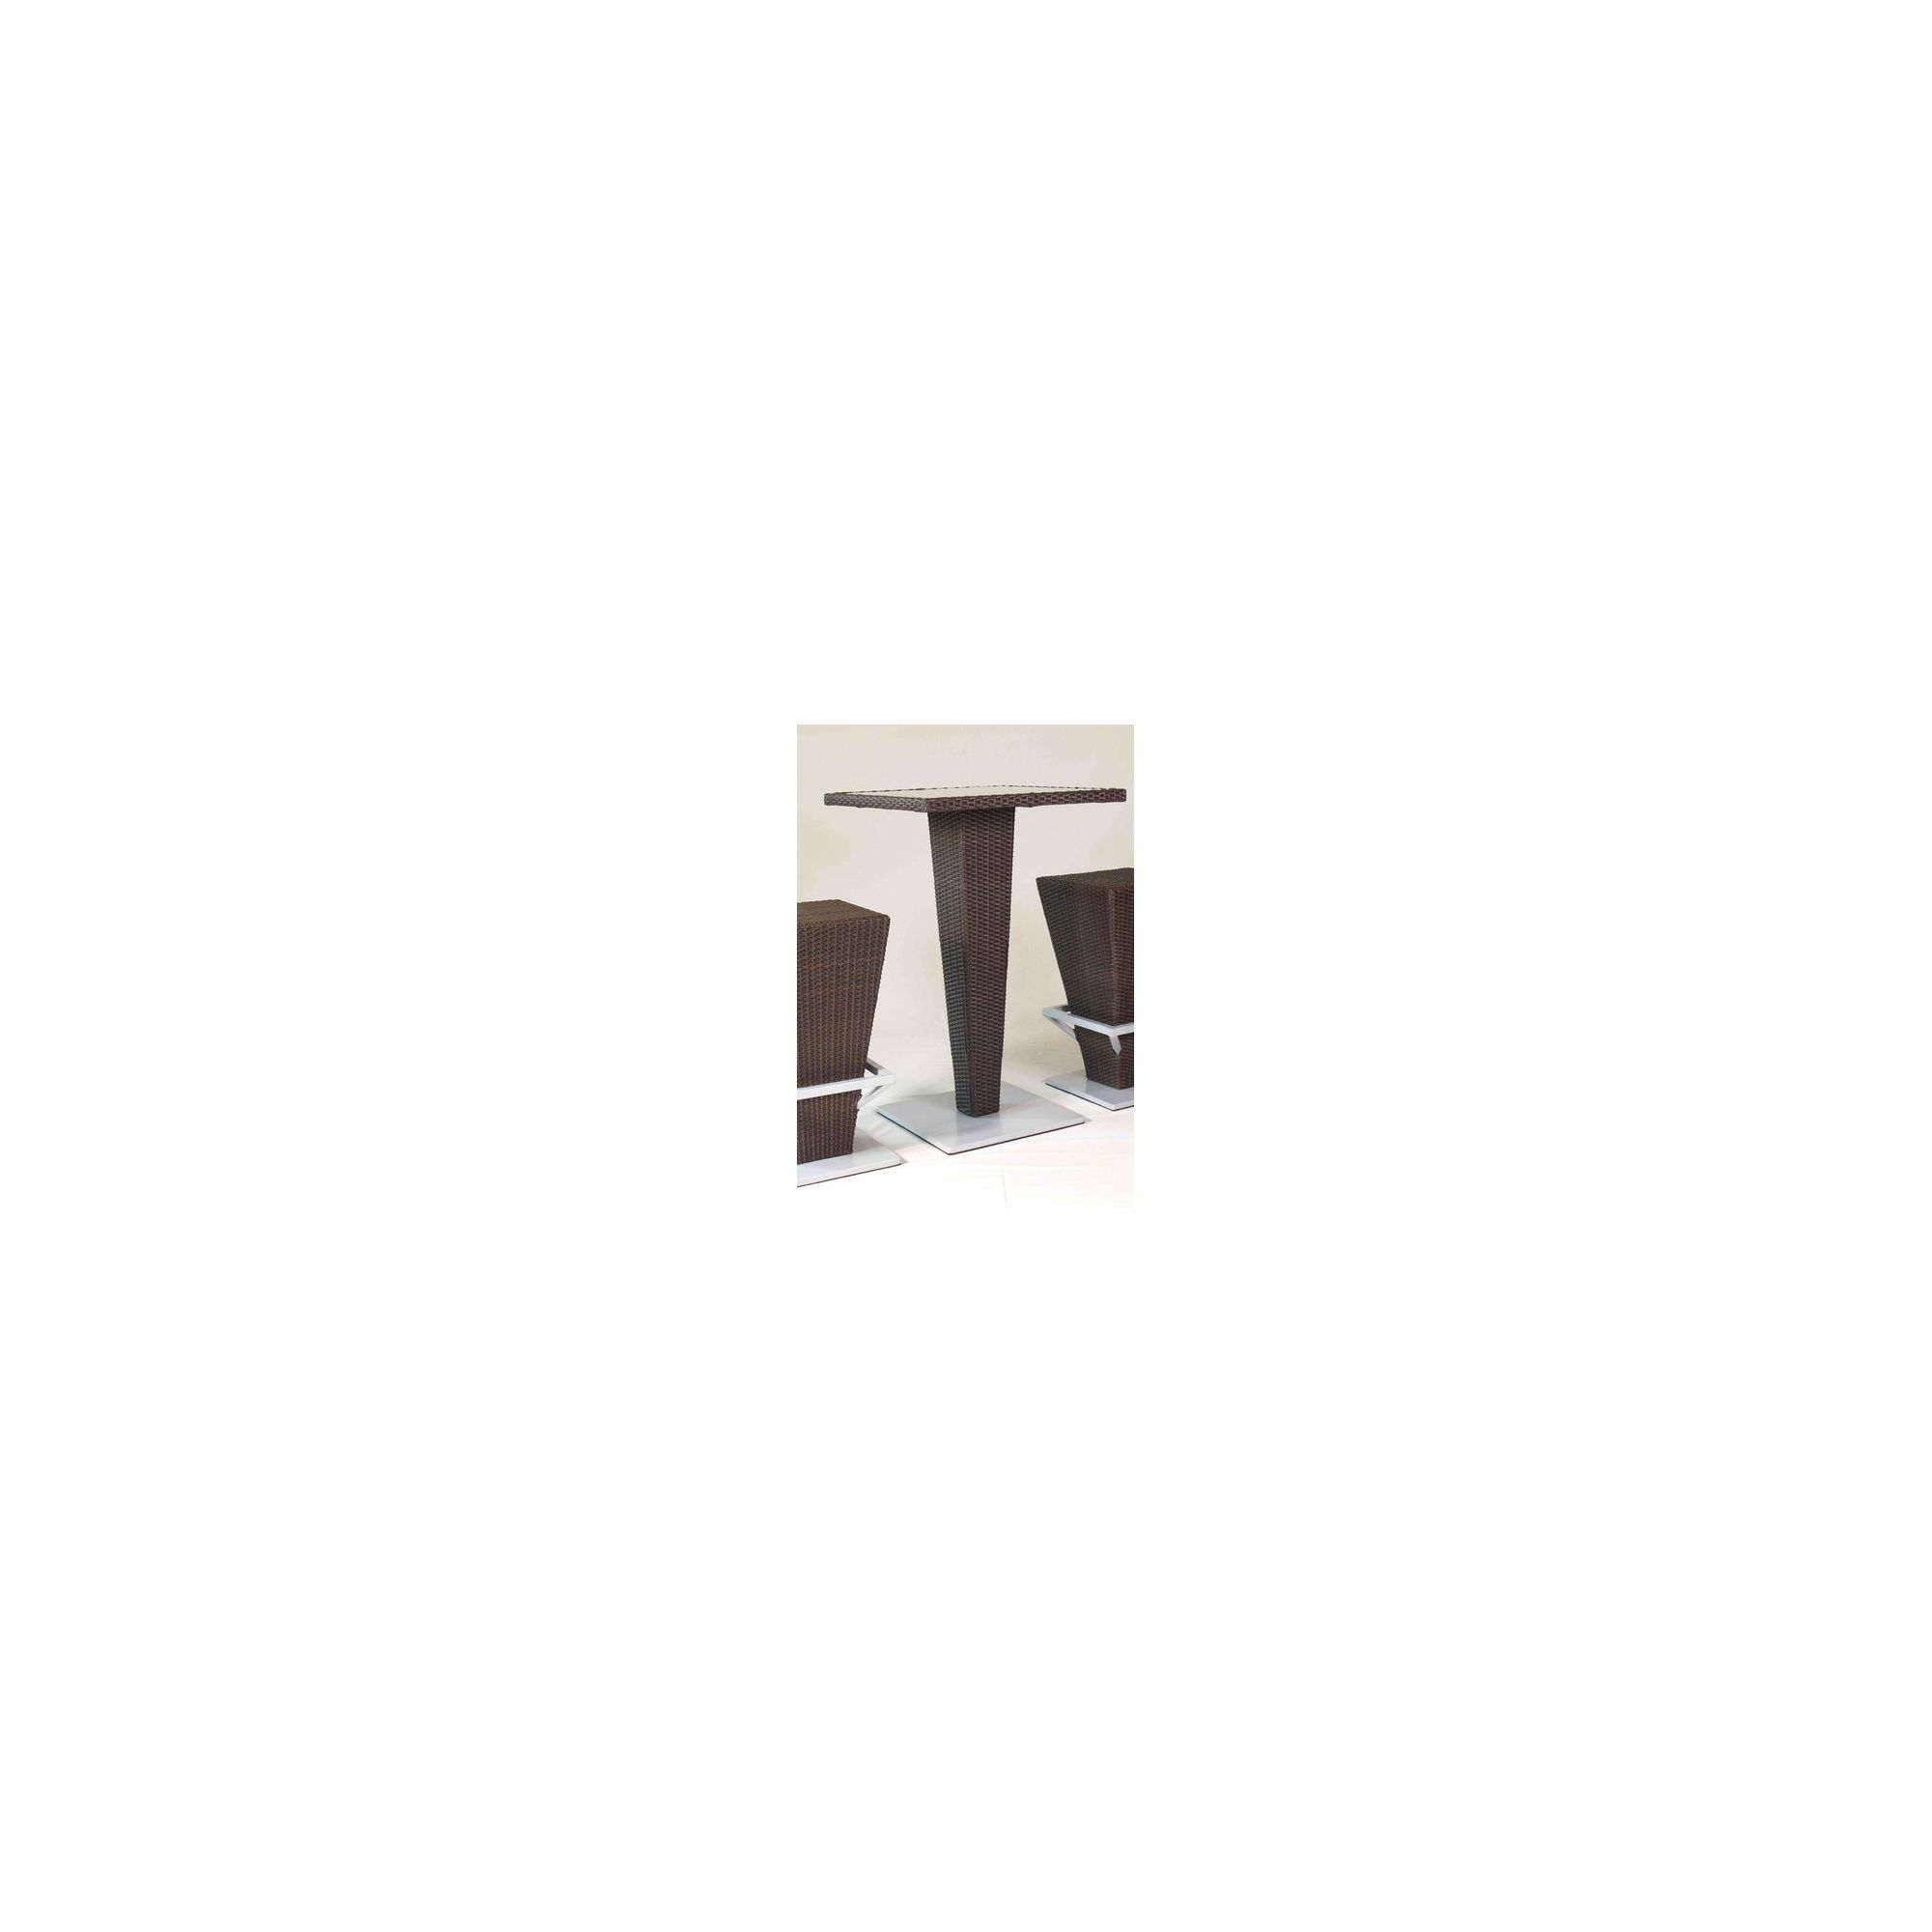 SkyLine Design Liada Bar Table - Cappucino 7mm at Tesco Direct